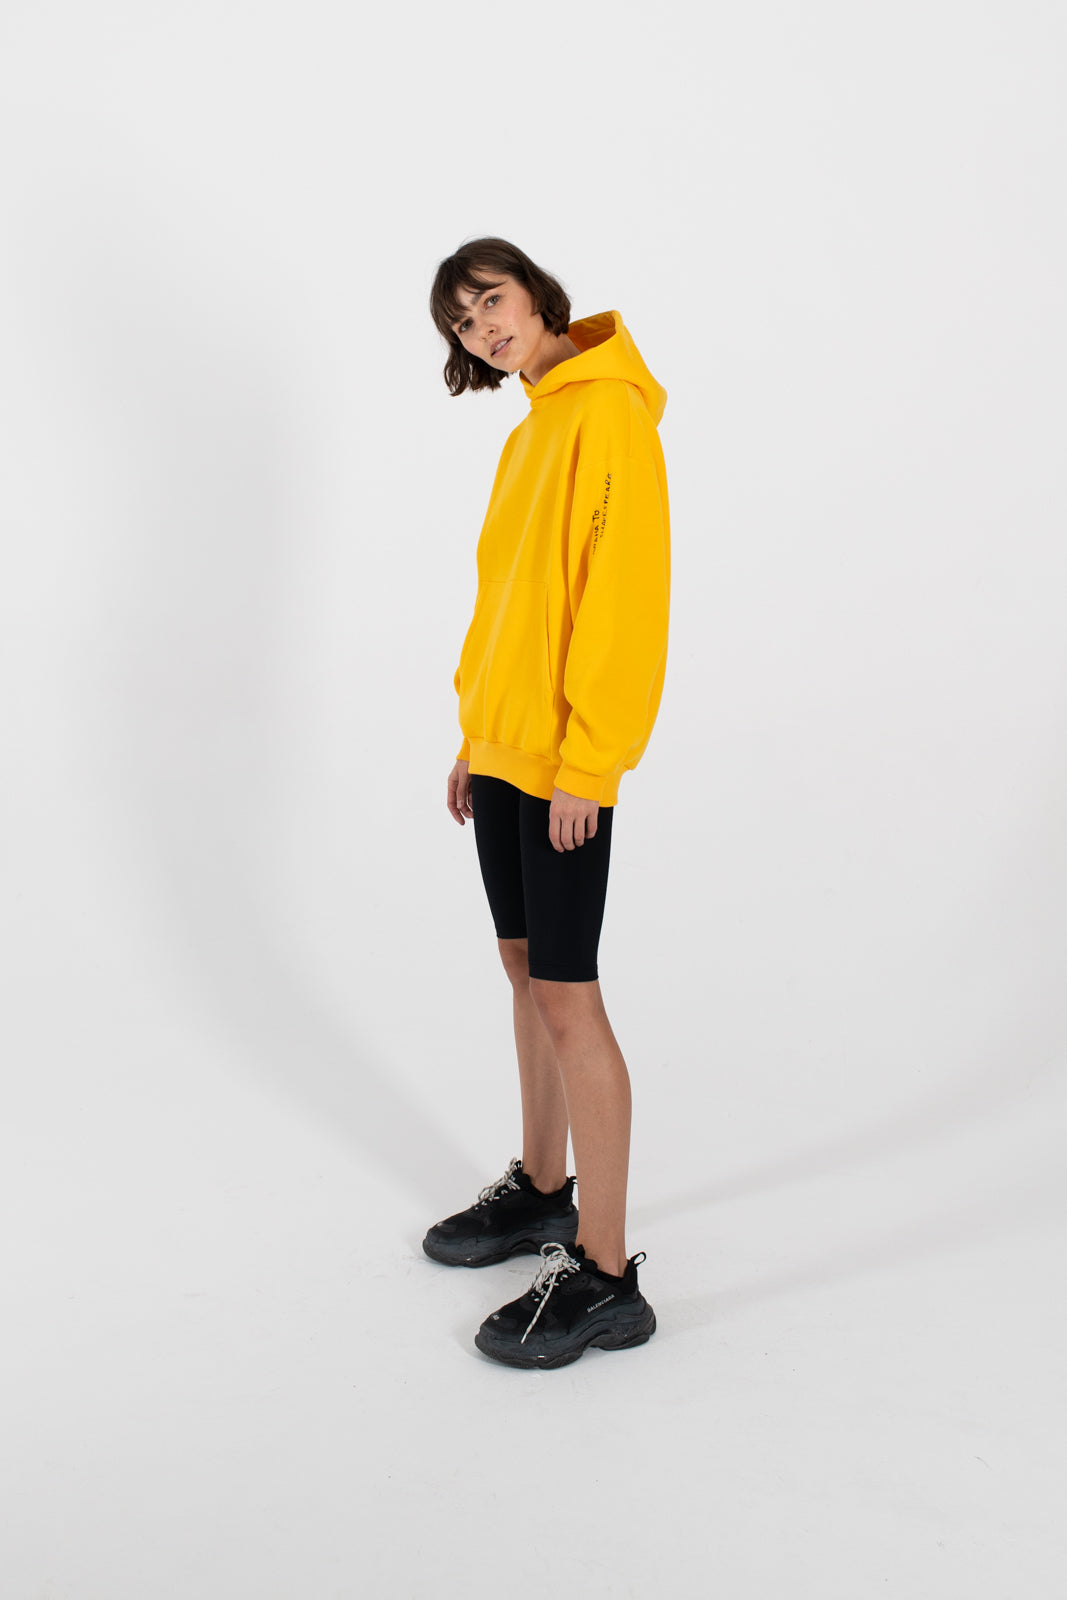 SHAKESPEARE-Marigold-yellow-hoodie-sweater-le-slap-leave-drama-to-shakespeare-summer-clothing.jpg